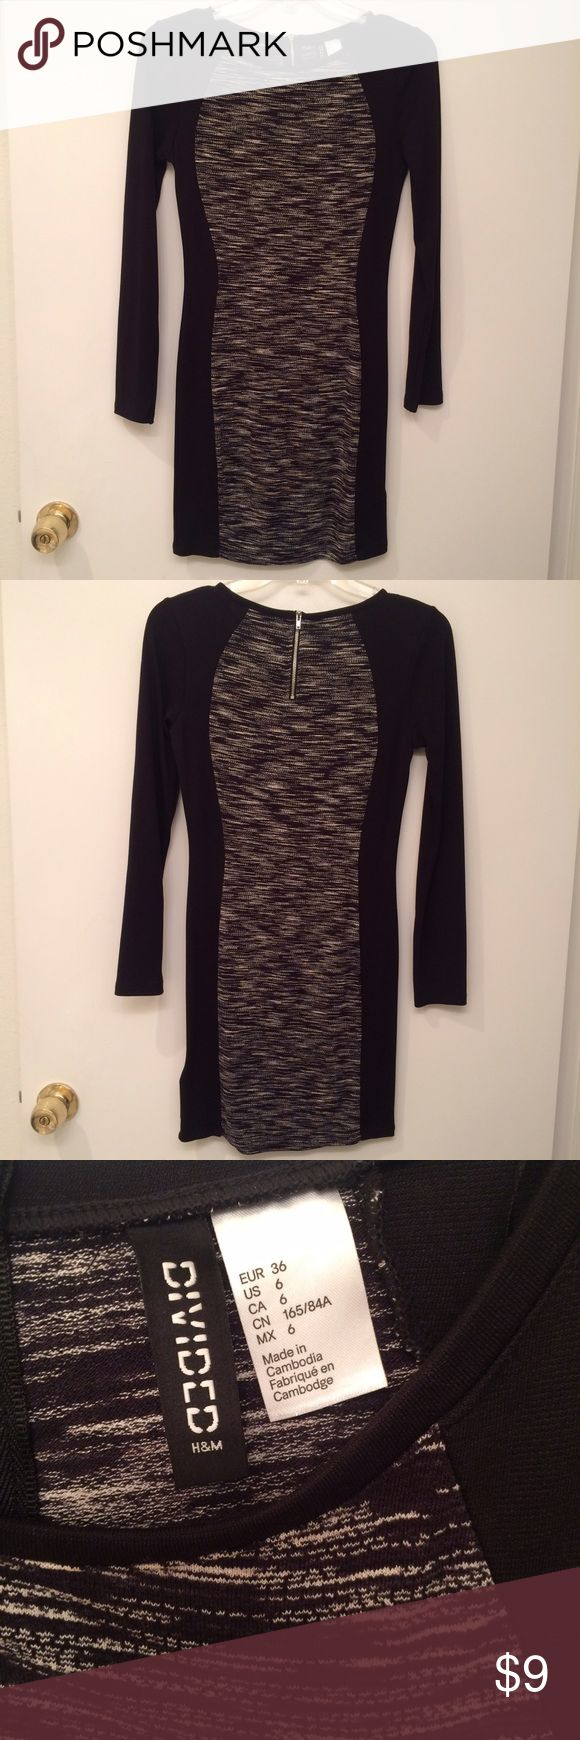 H&M Divided tight black dress size 6 Wore this dress once. Super cute for date night or a night out with the gals! Divided Dresses Long Sleeve